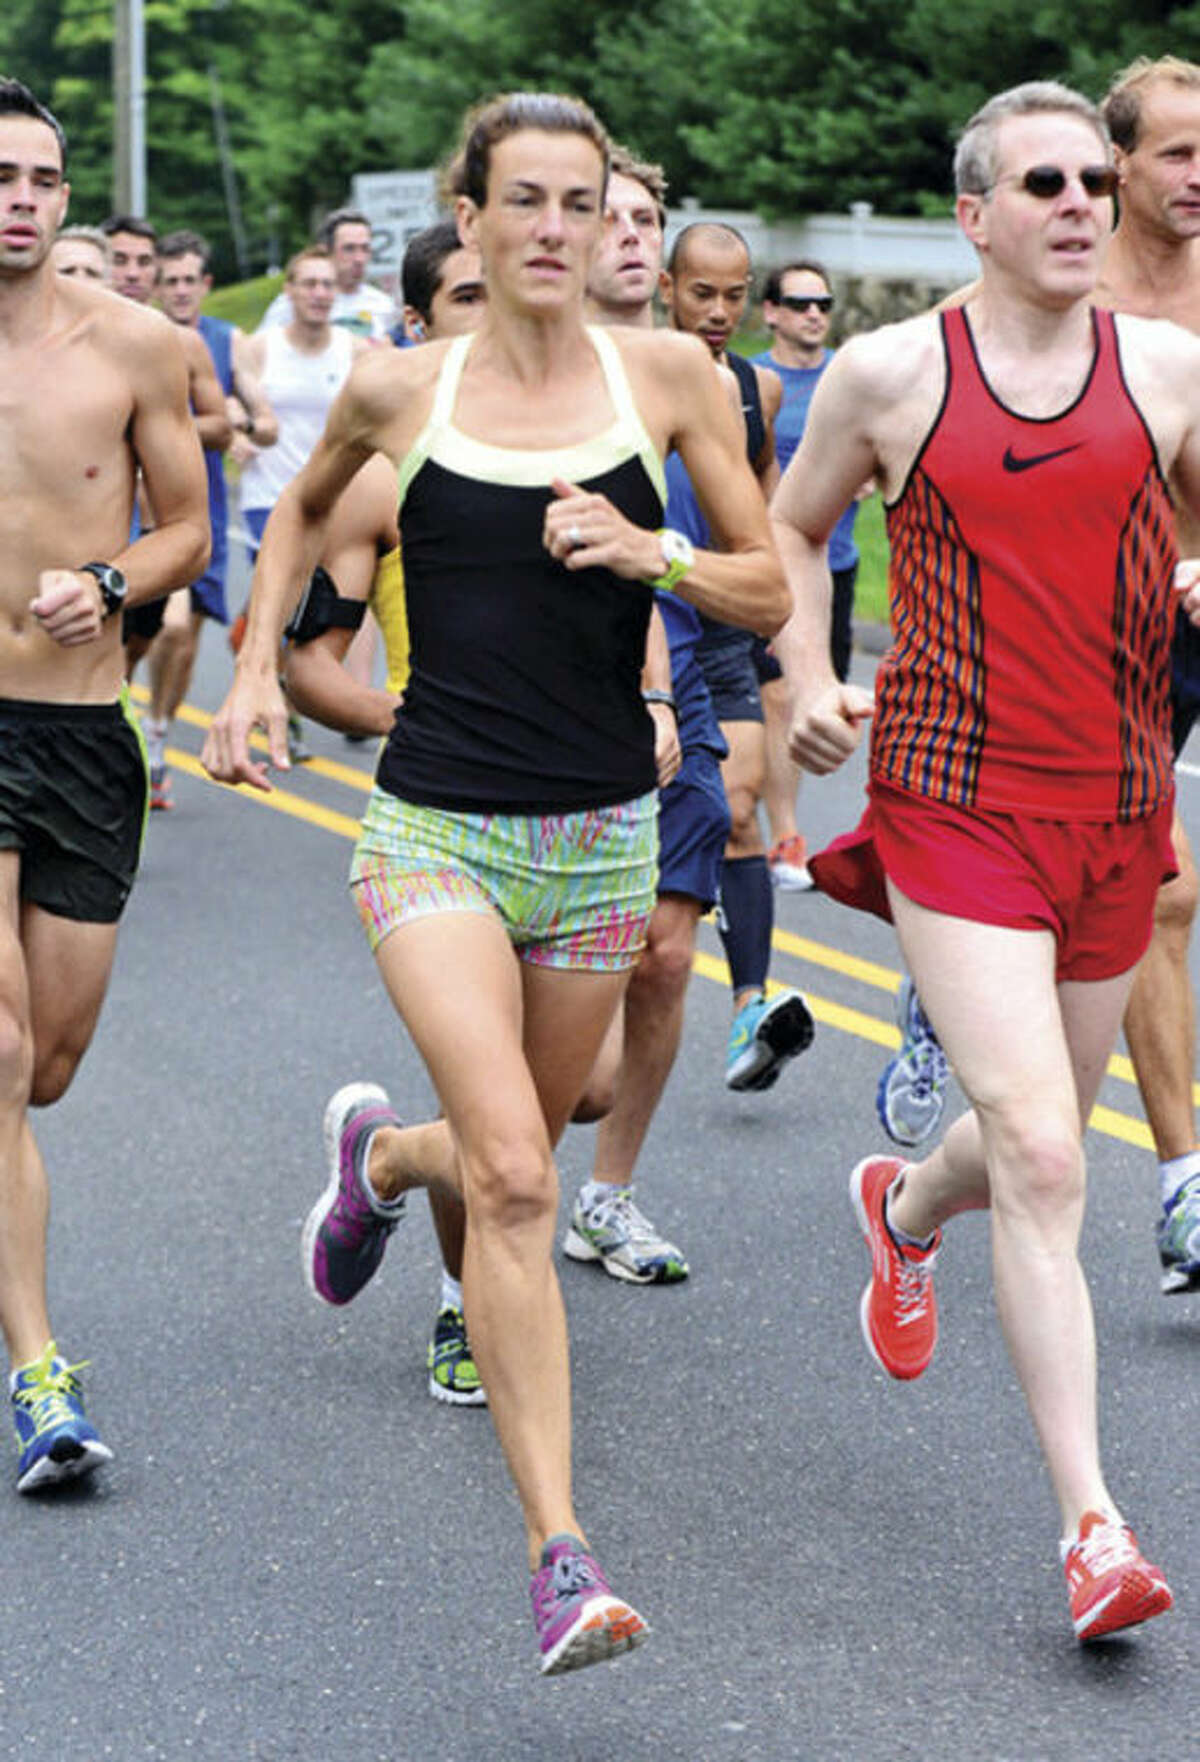 Hour photo/Erik Trautmann Mary Dolan Zengo, center, runs with the pack in the early stages of Saturday's 51st annual Labor Day Weekend 10-mile road race in Westport. She finished first among women and fourth overall.